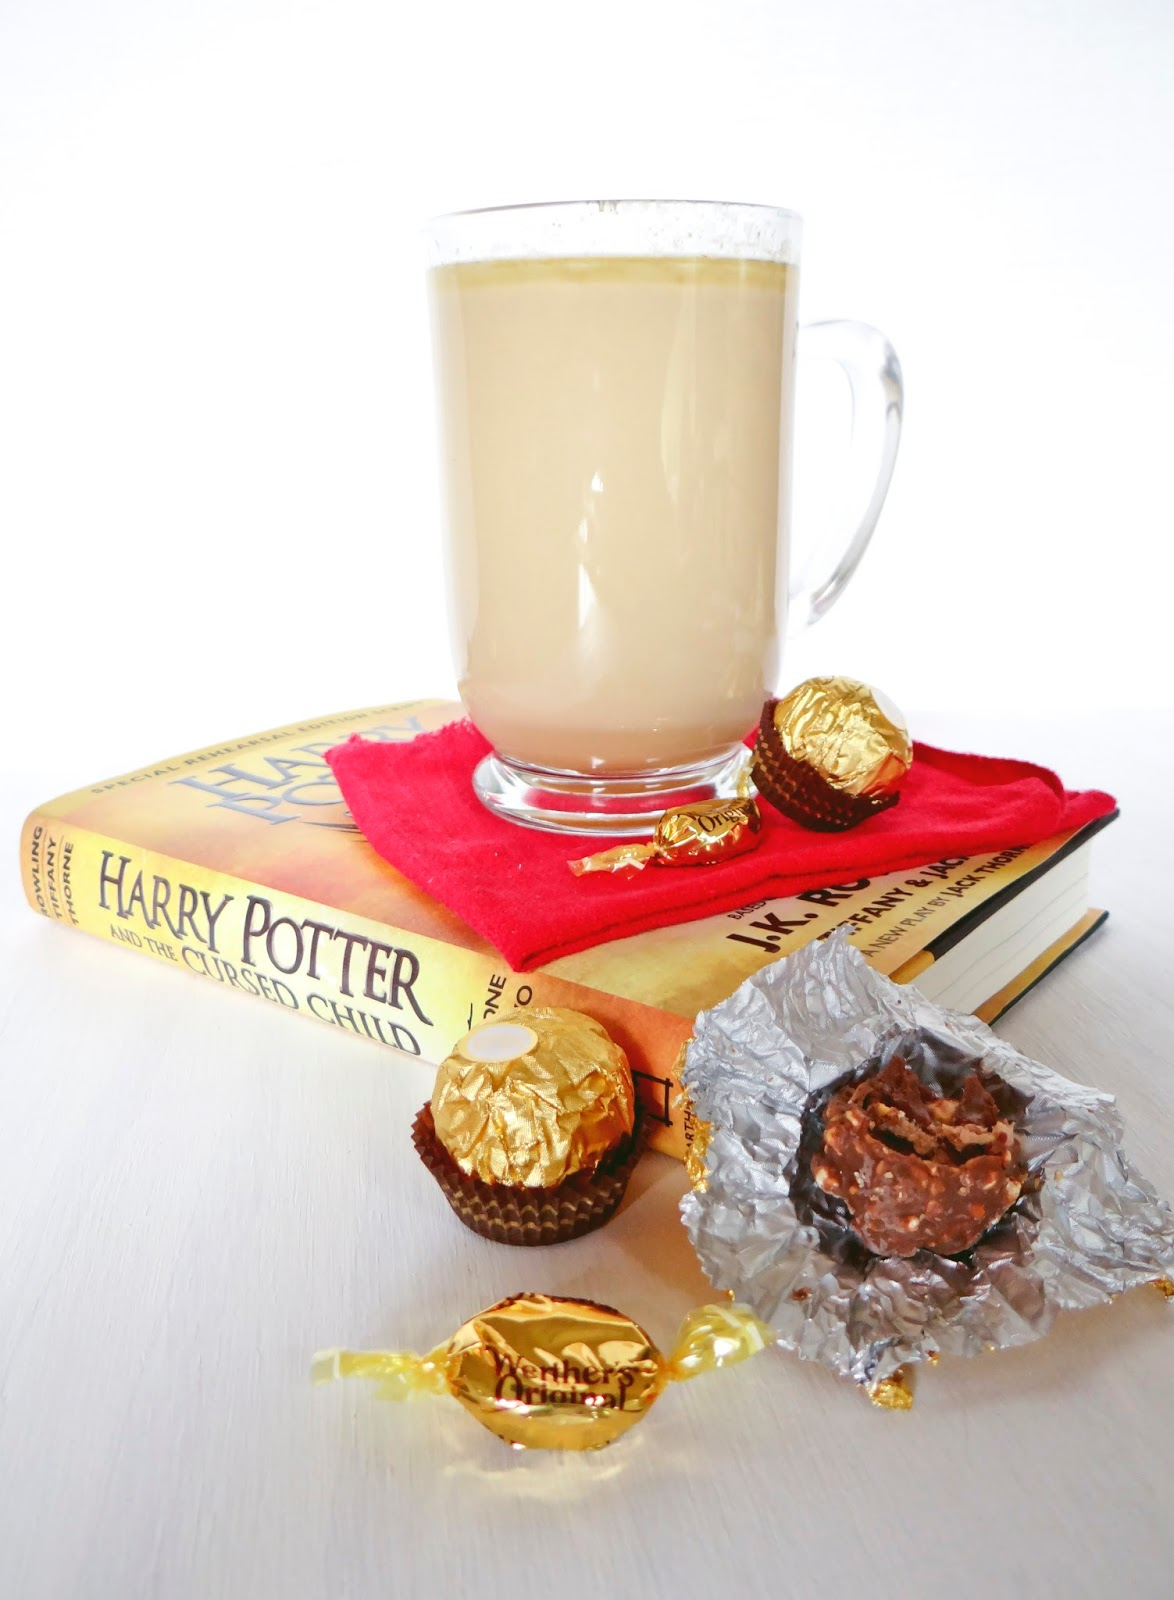 Super-Easy Harry Potter Butterbeer Recipe by Bambino Amore - the Apron Makers